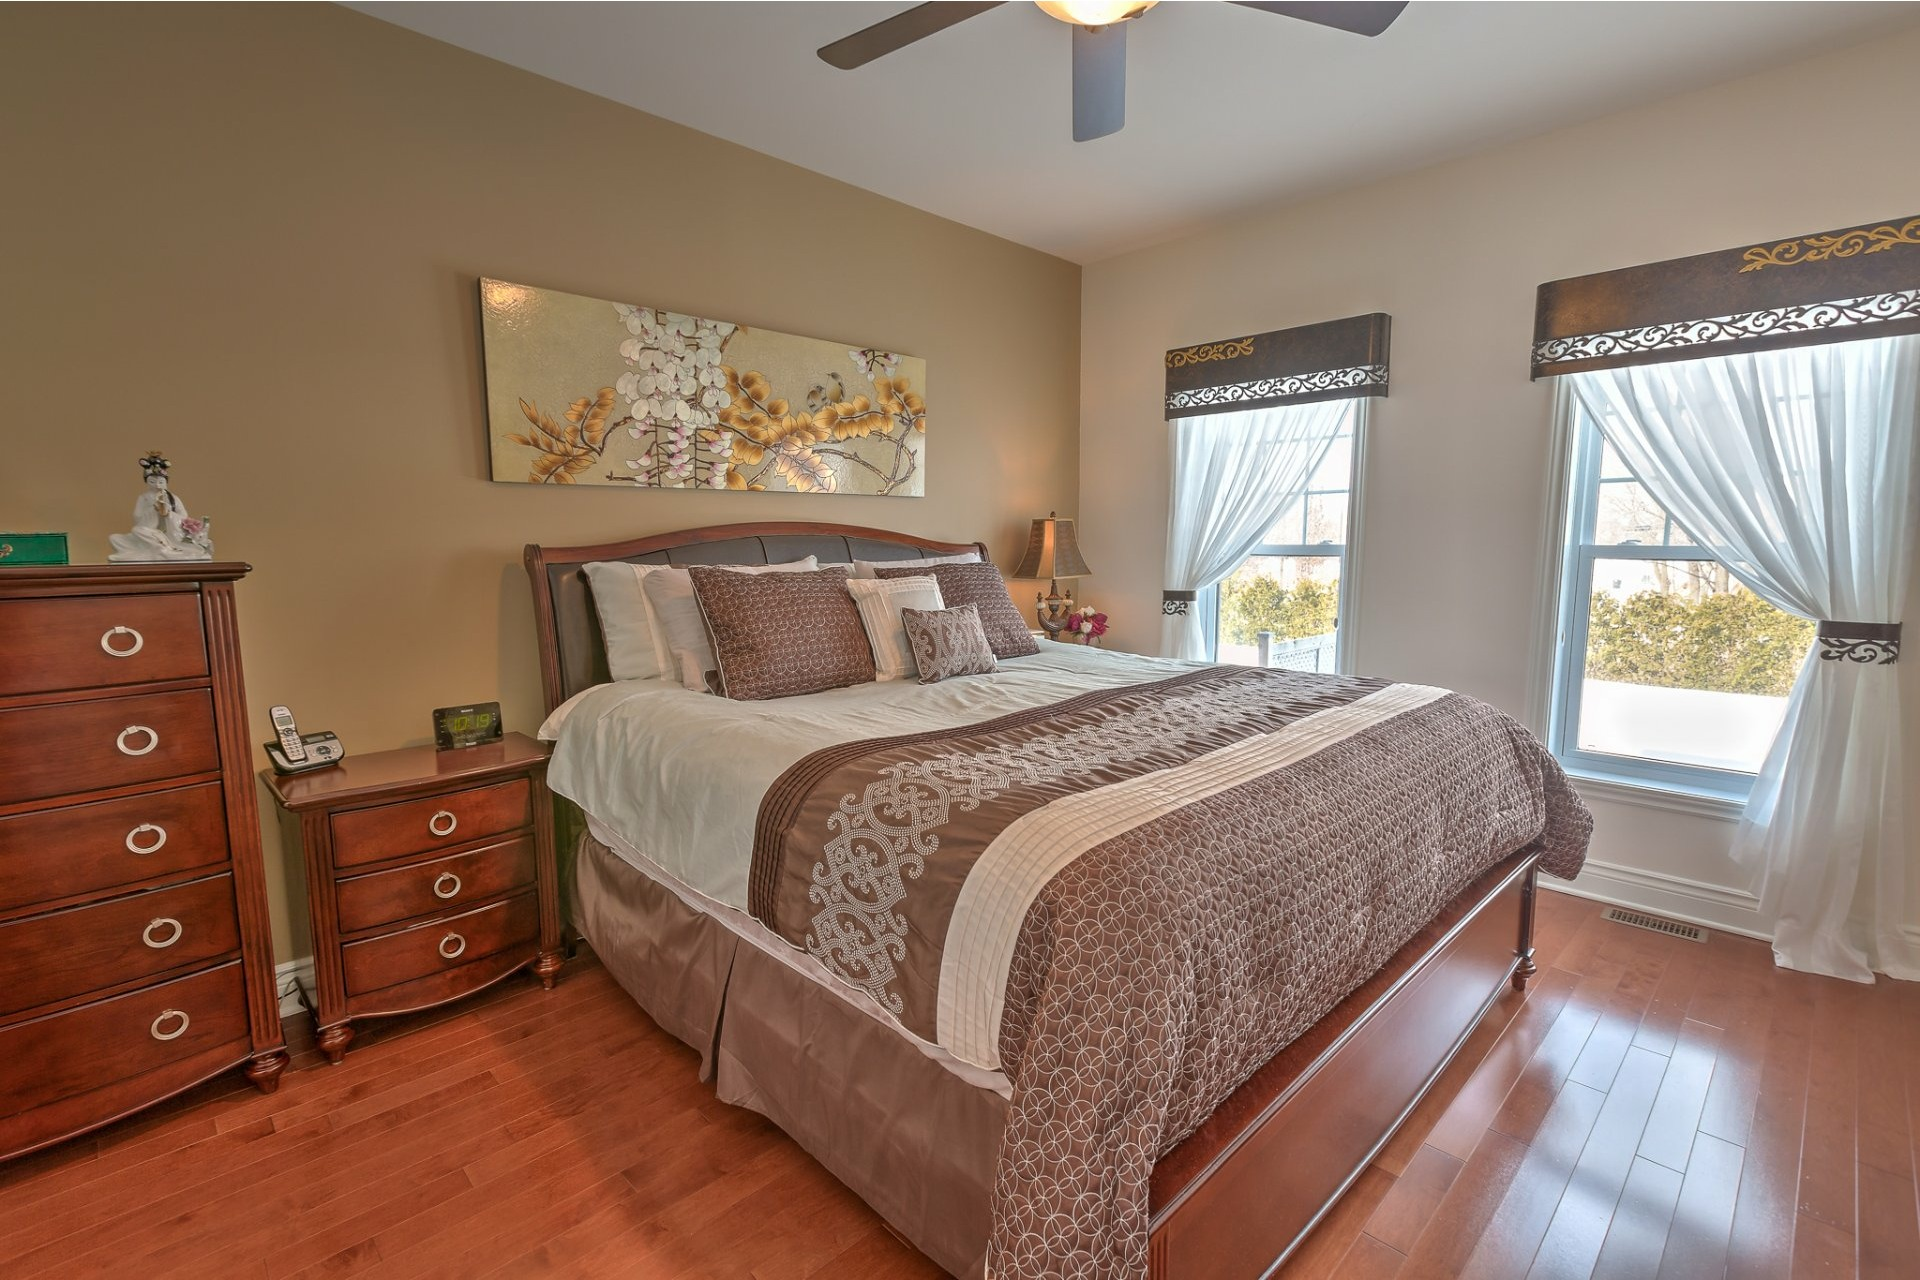 image 16 - Apartment For sale Brossard - 7 rooms